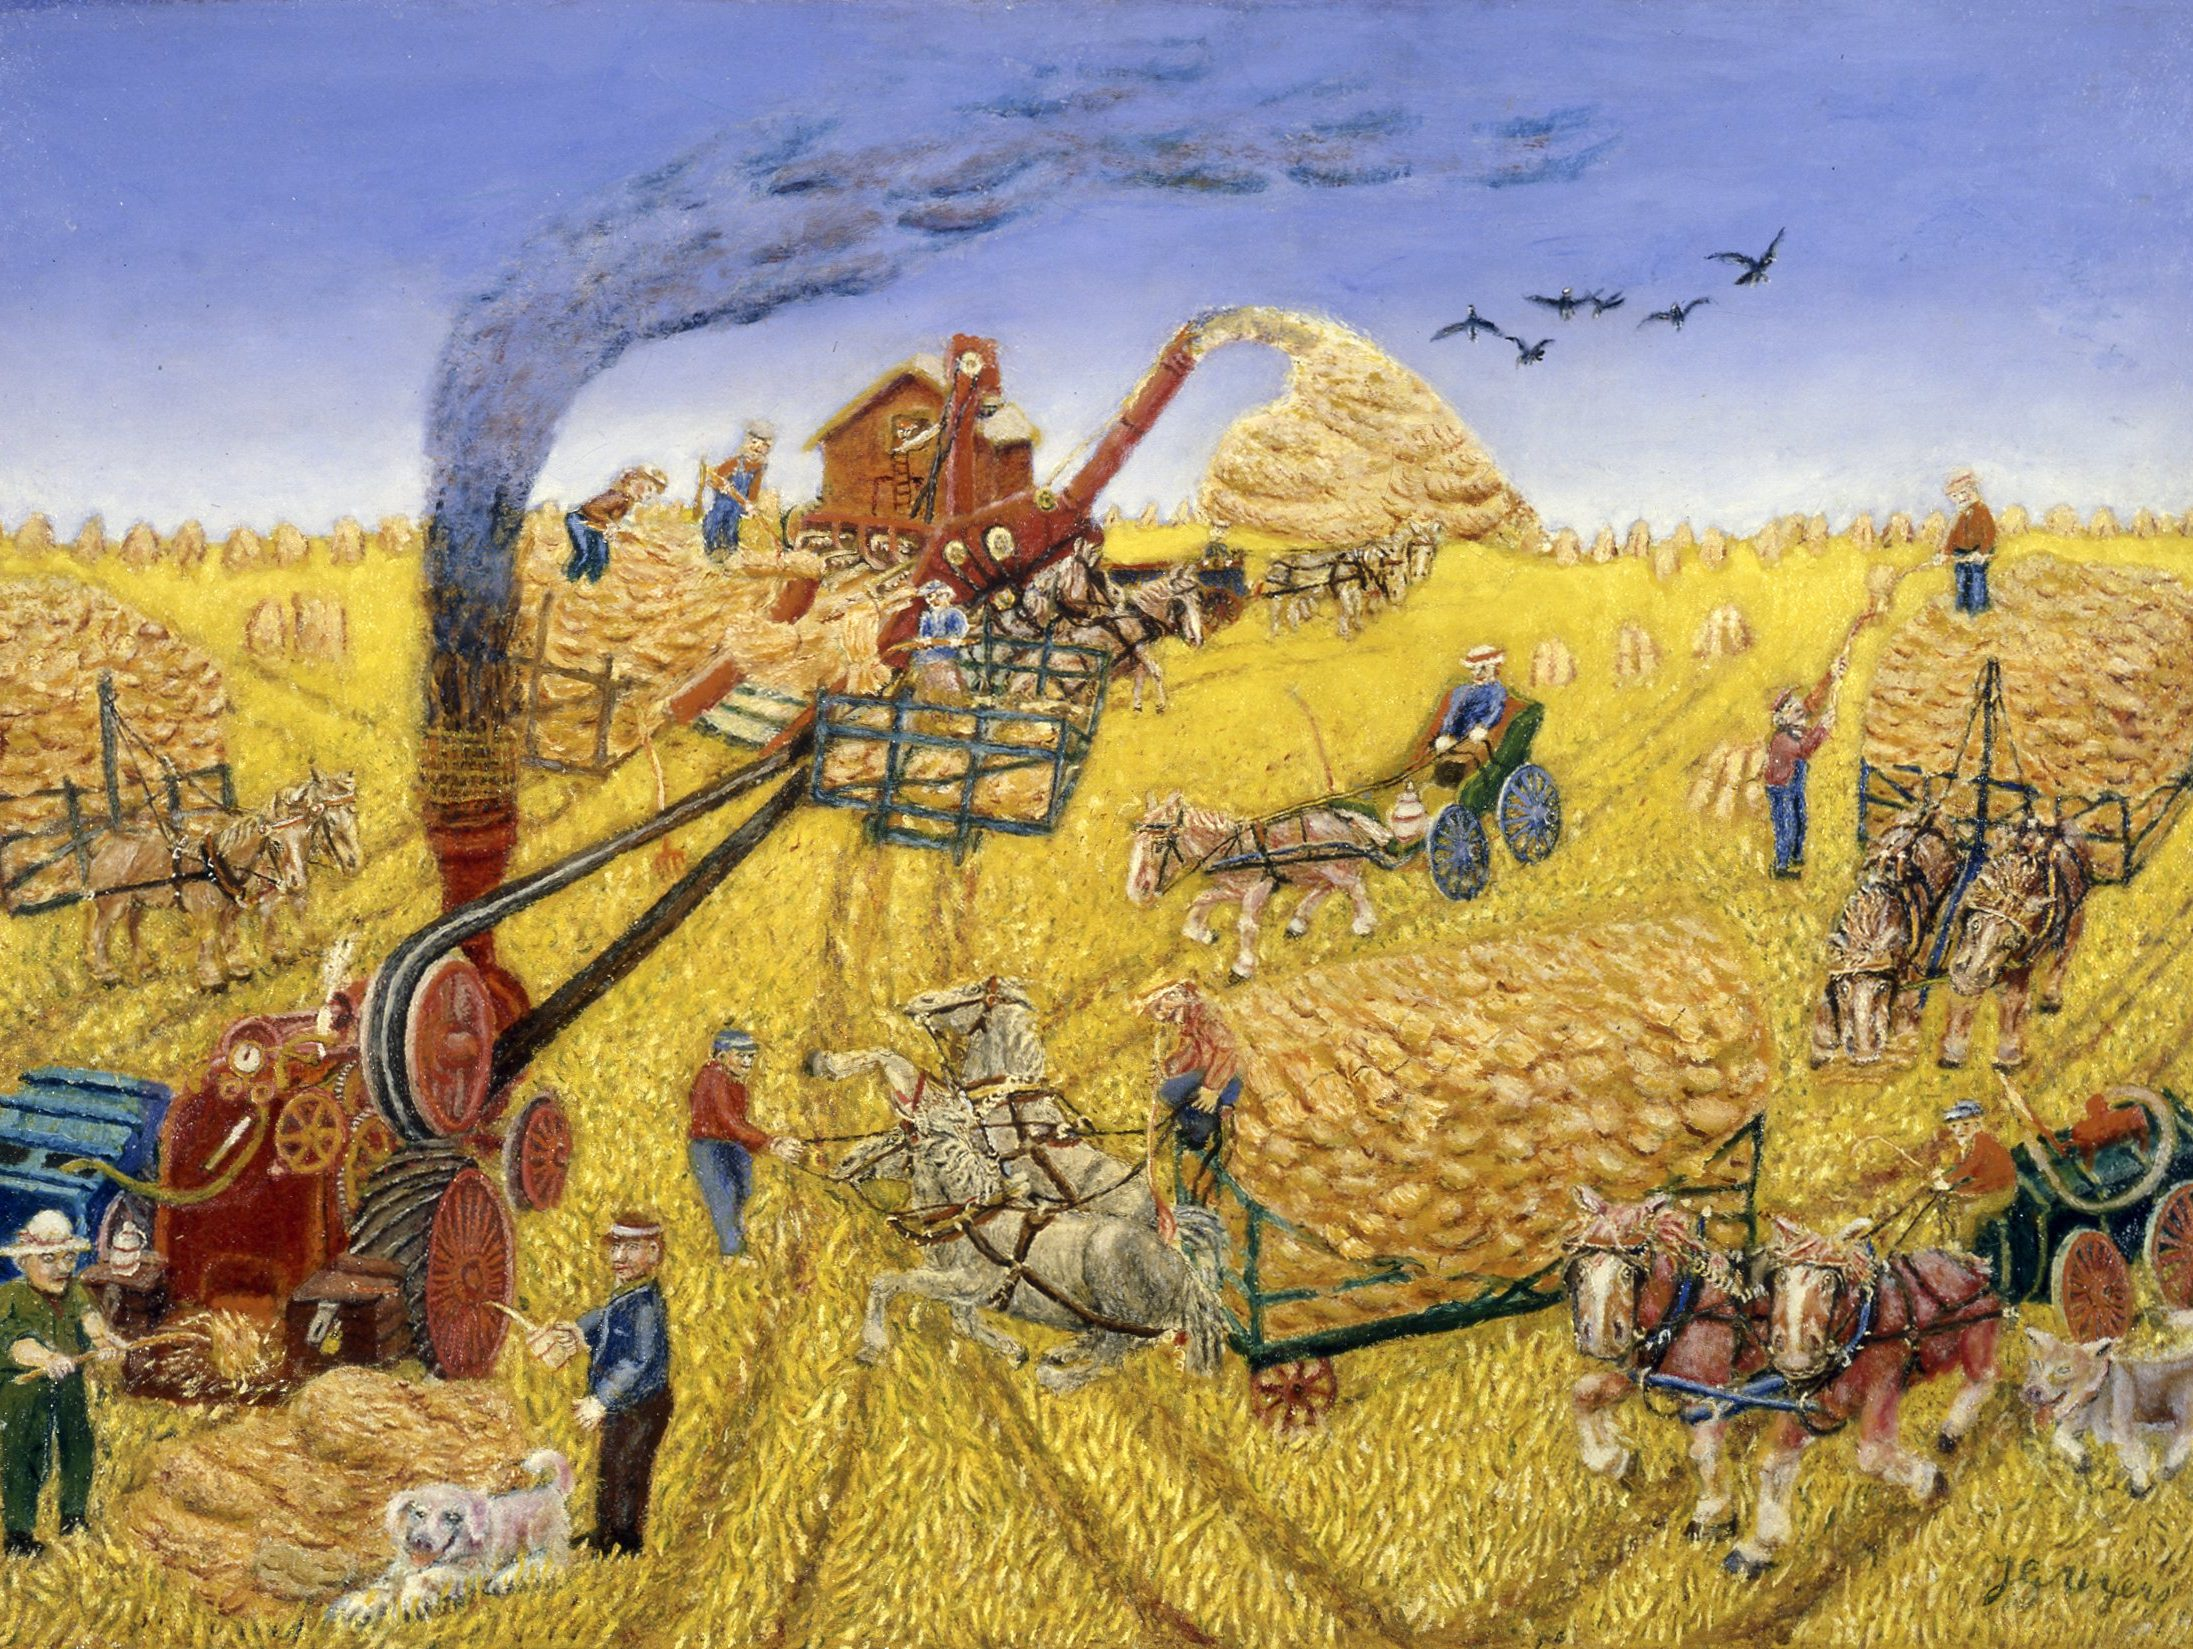 Oil painting on fabric of a rural scene in which crops are being harvested and threshed for grain by humans, horses and machines